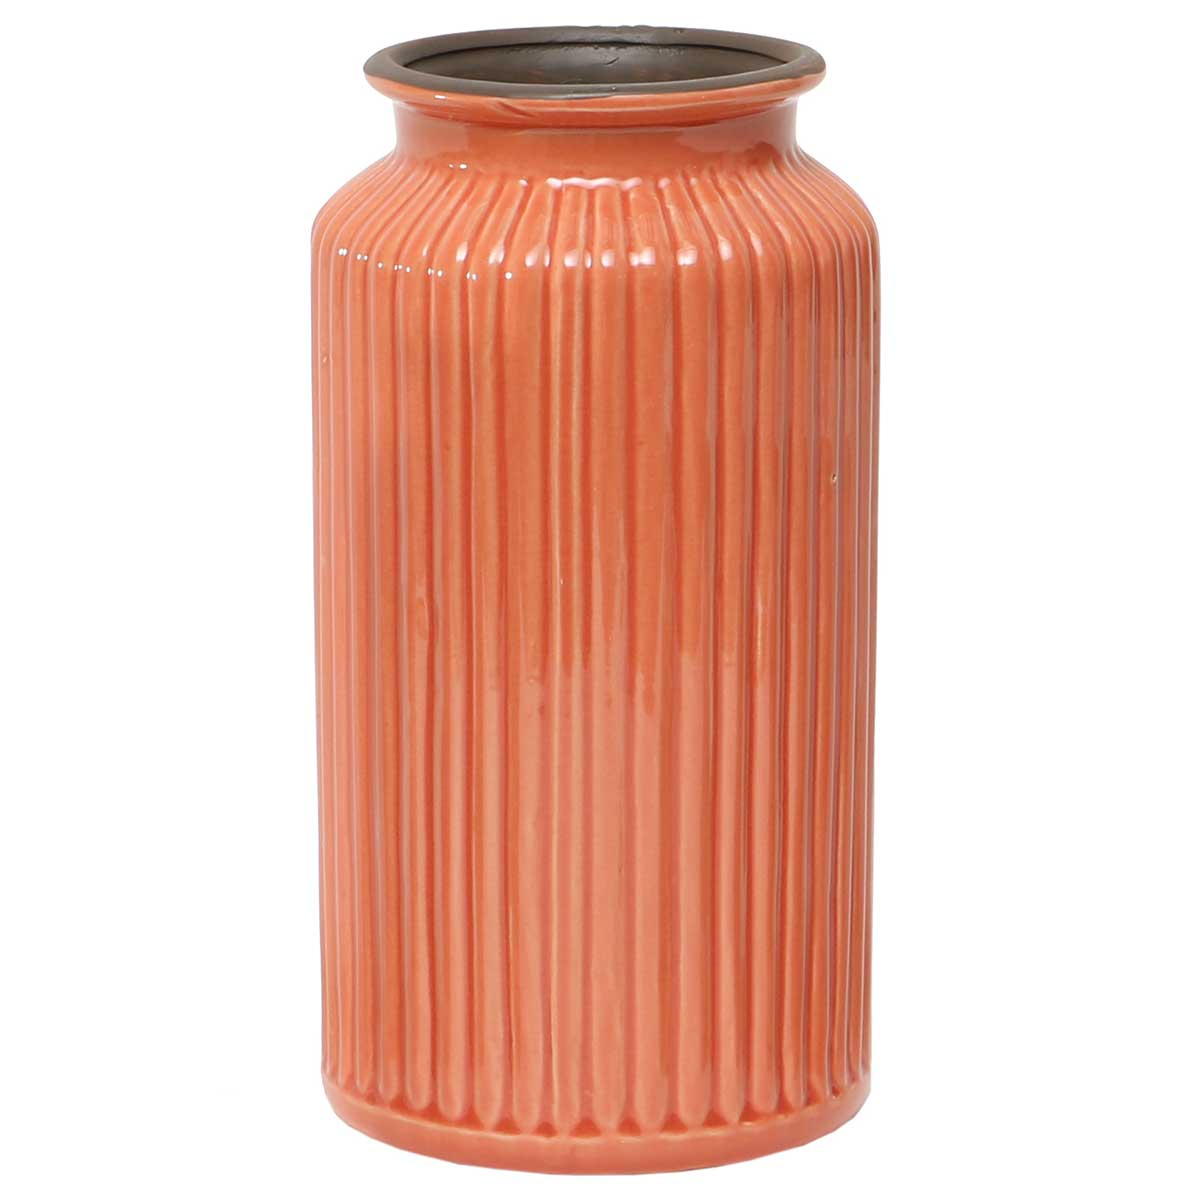 Peach Ribbed Vase 4.5�x10� A2087 PE v22